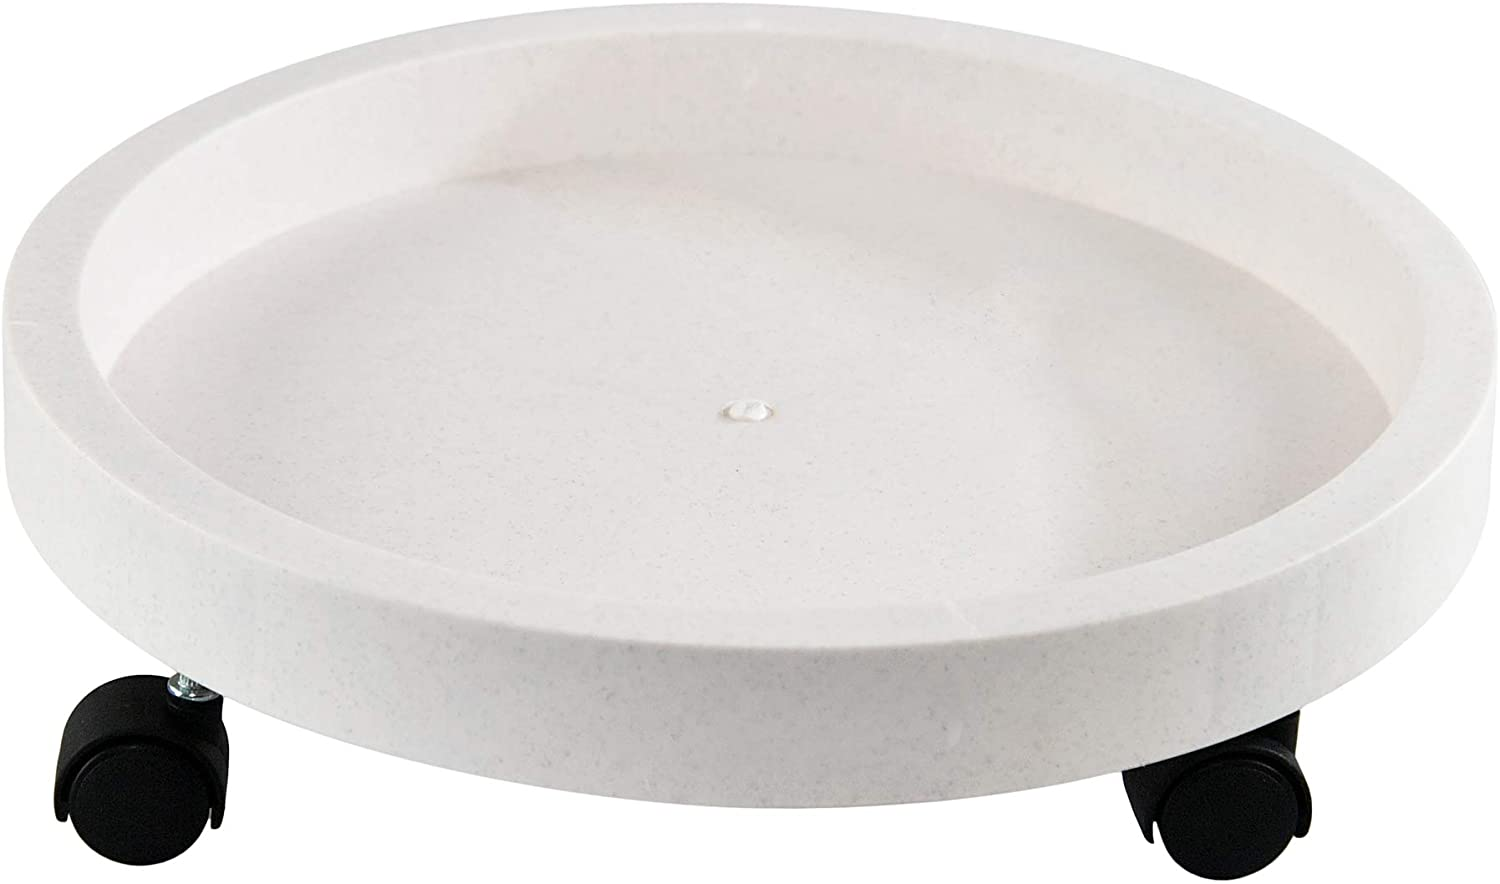 """Home-X Large Plant Caddy with Wheels and Sturdy Rim to Keep Potted Plants Secure, Rolling Planter Tray for Indoor and Outdoor Use, 15"""" D x 3"""" H, White"""